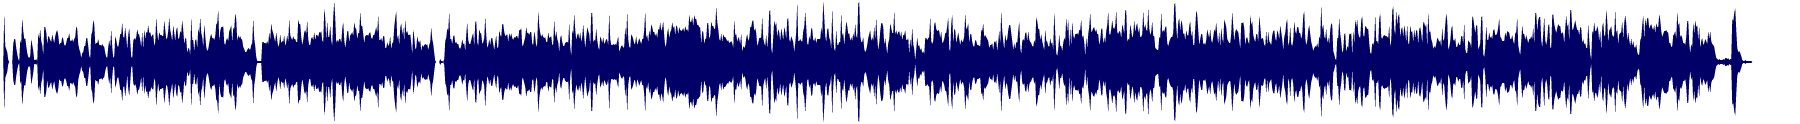 waveform of track #66297